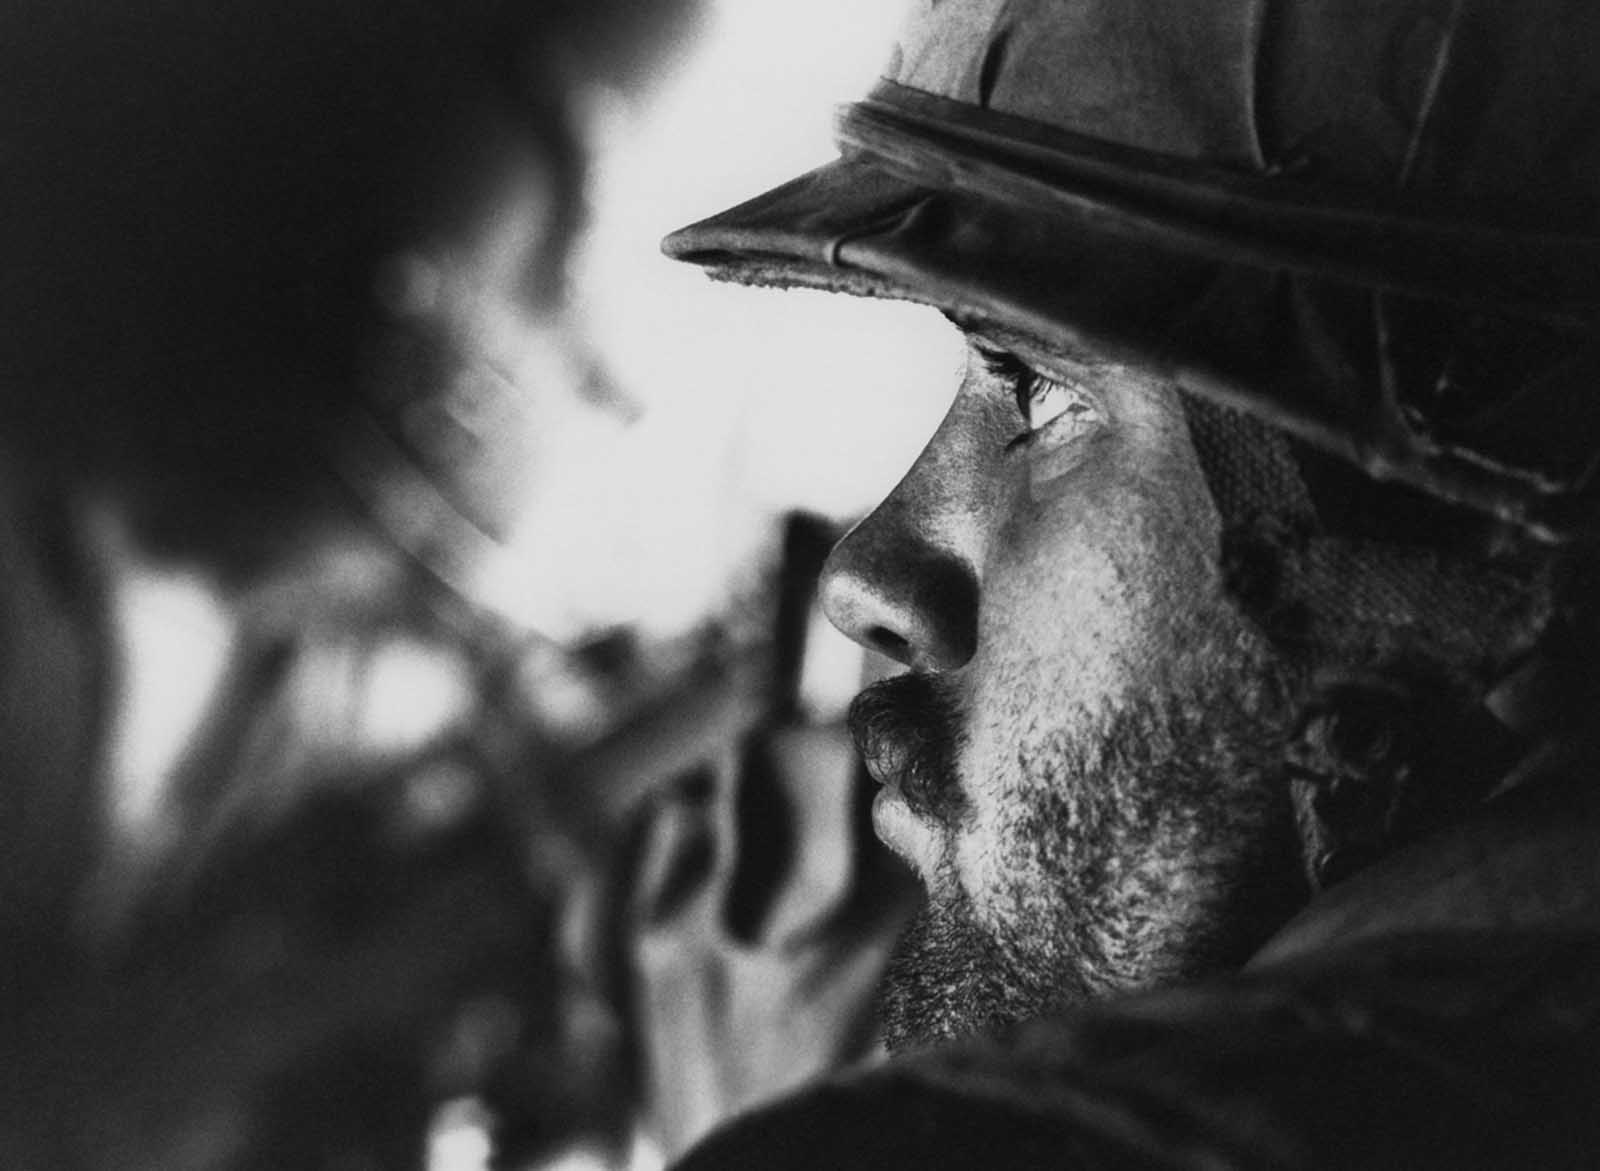 A U.S Marine with several days of beard growth sits in a helicopter after being picked up from the landing zone near Con Thein on the southern edge of the demilitarized zone in South Vietnam on July 18, 1968. His unit had just been relieved of duty after patrolling the region around the DMZ.